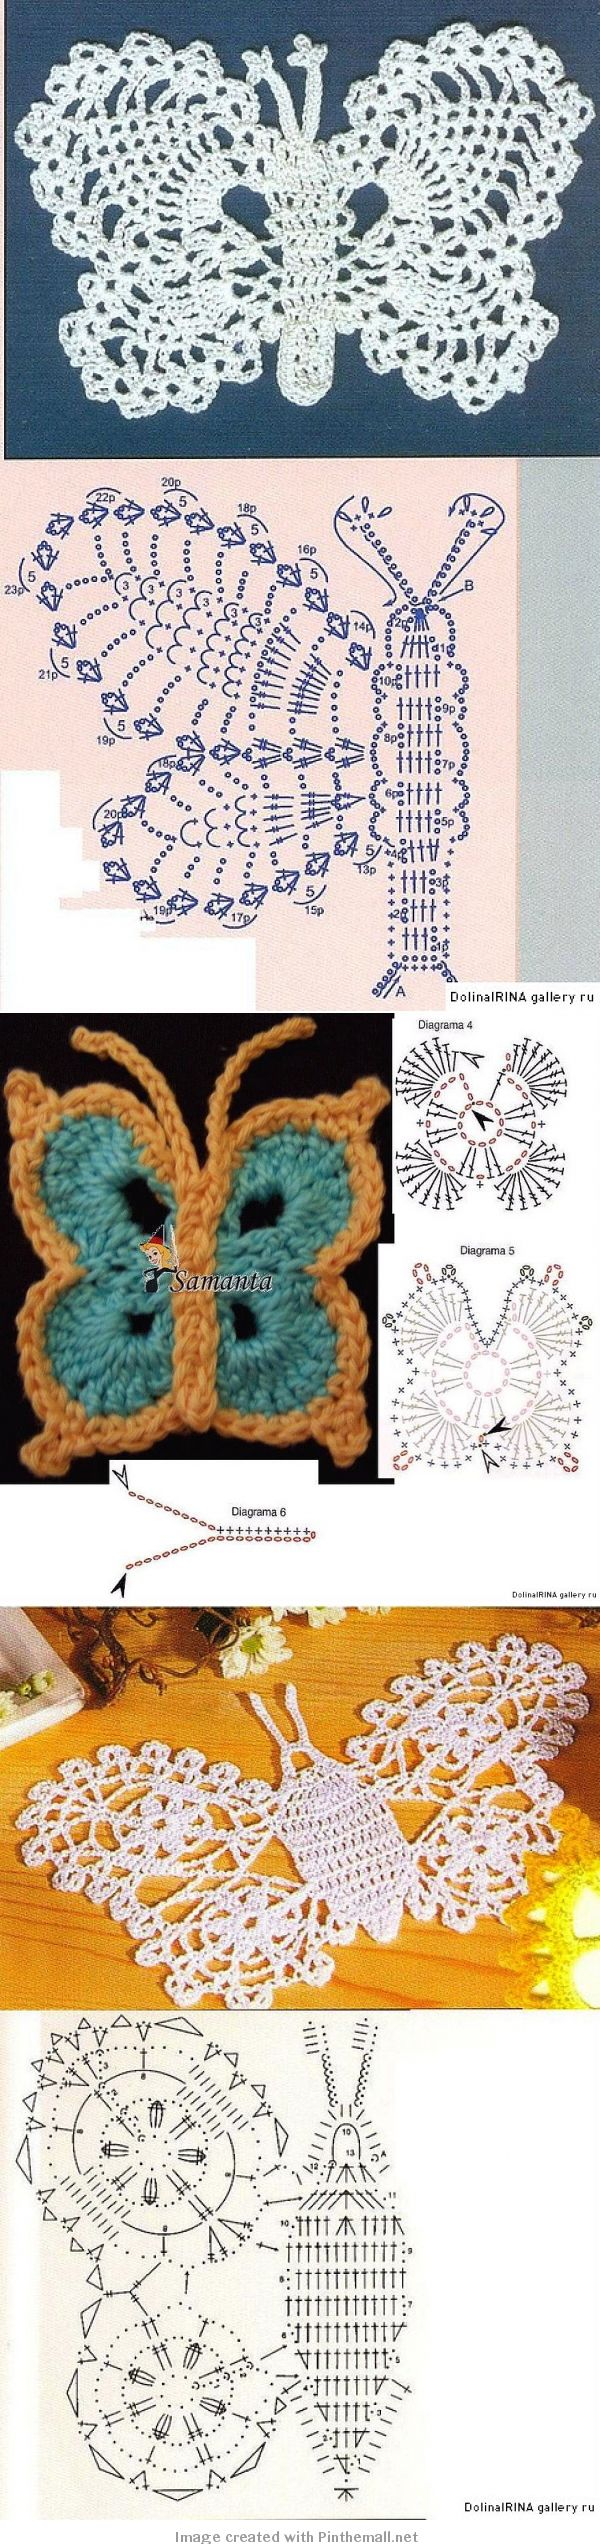 #Crochet #Stitches - So many beautiful butterflies here - with charts!.